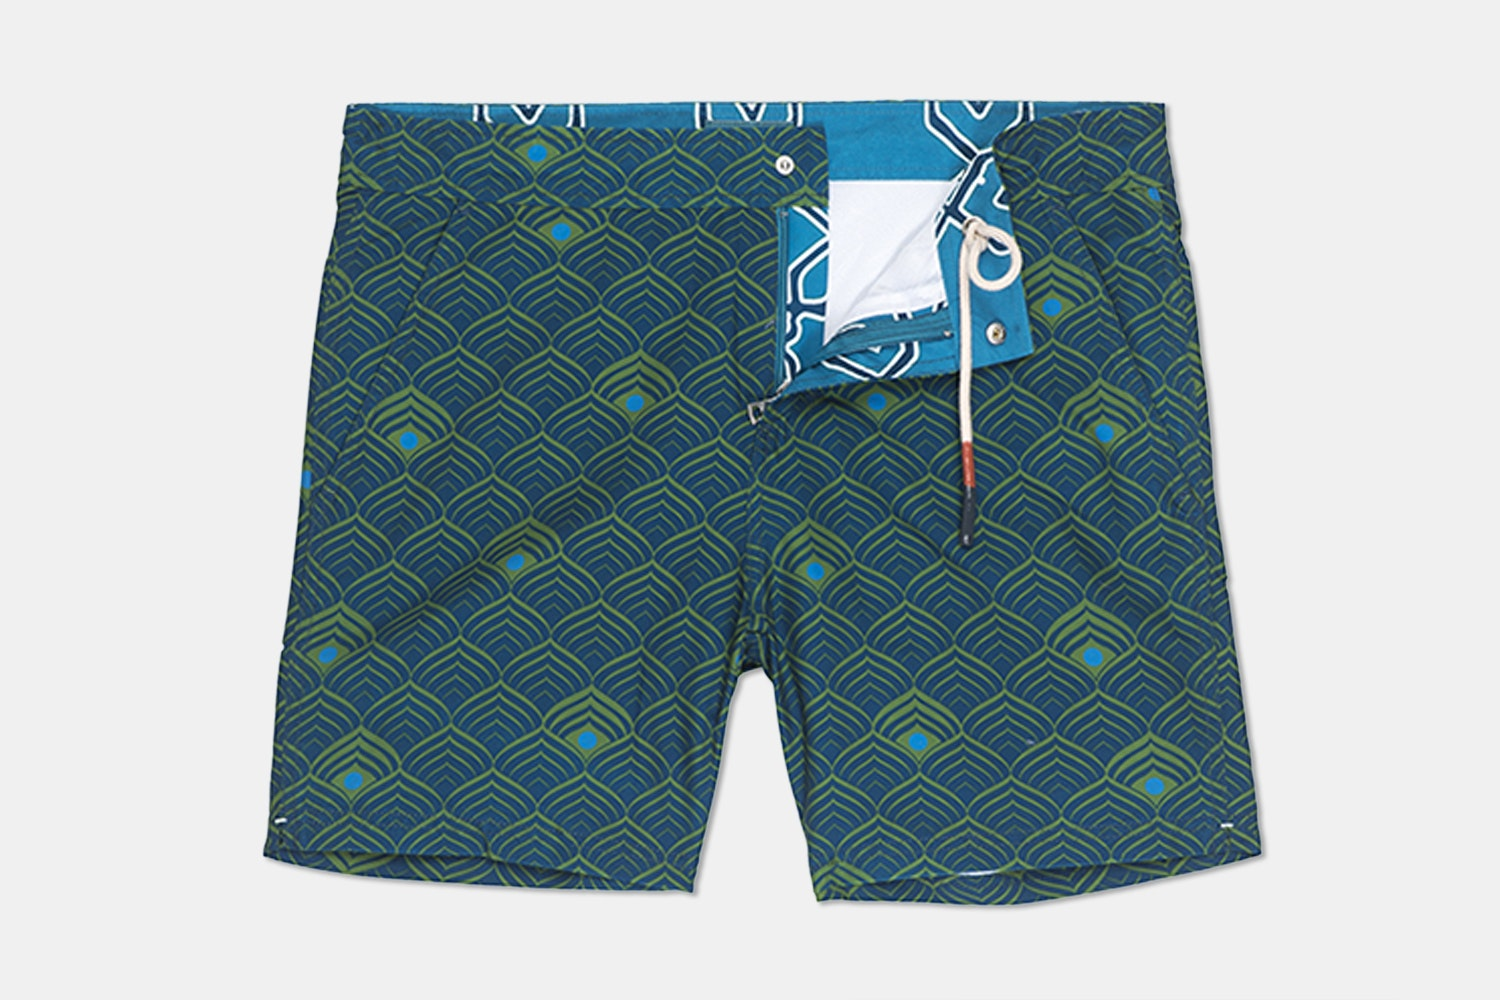 Hampton Swim Trunk – Lotus Geo  (+ $12)